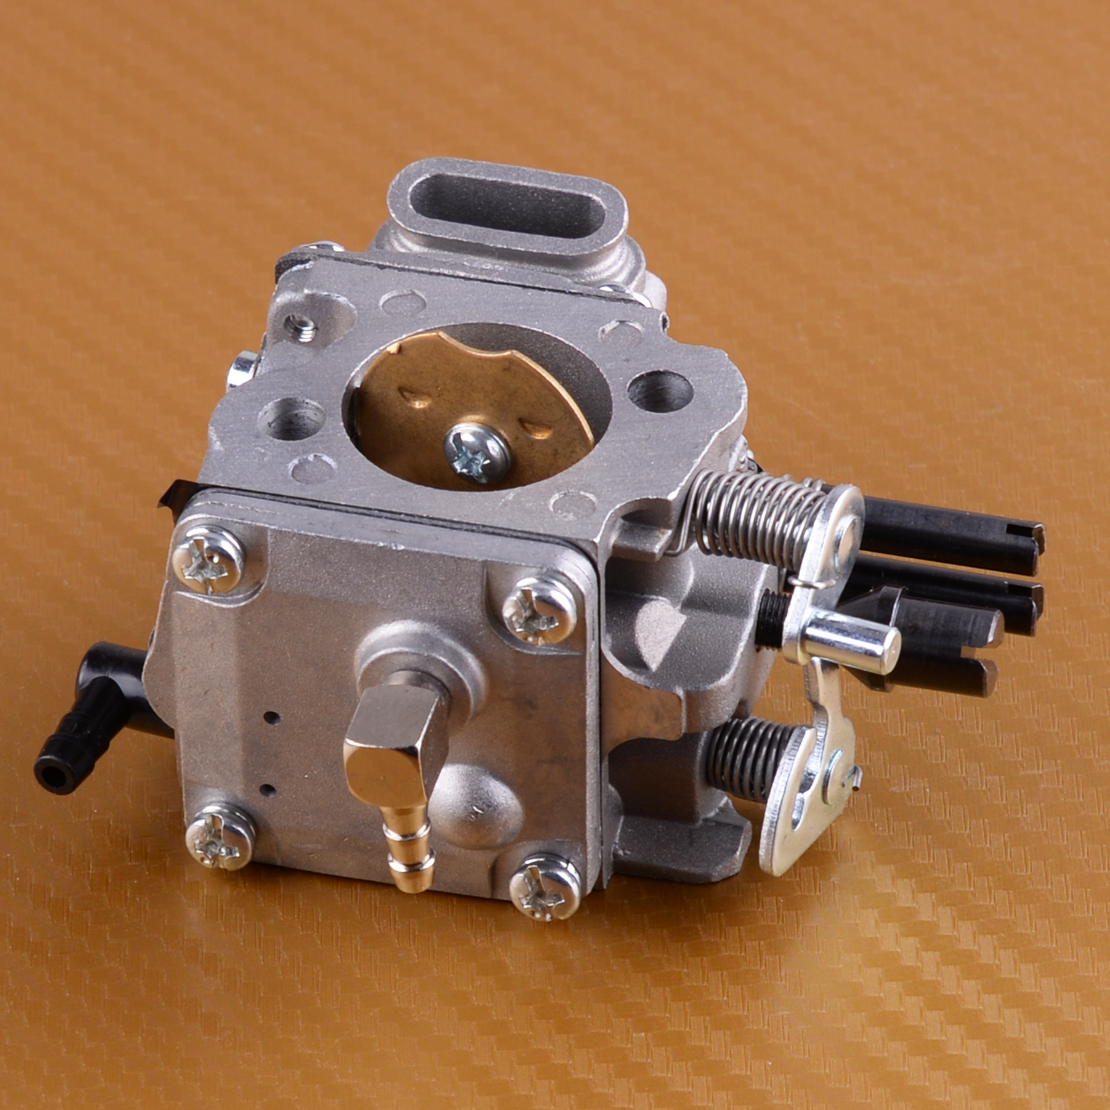 LETAOSK Carburetor Carb Replacement Tool 1122 120 0621 Fit For Stihl 066 064 MS650 MS660 Chainsaw